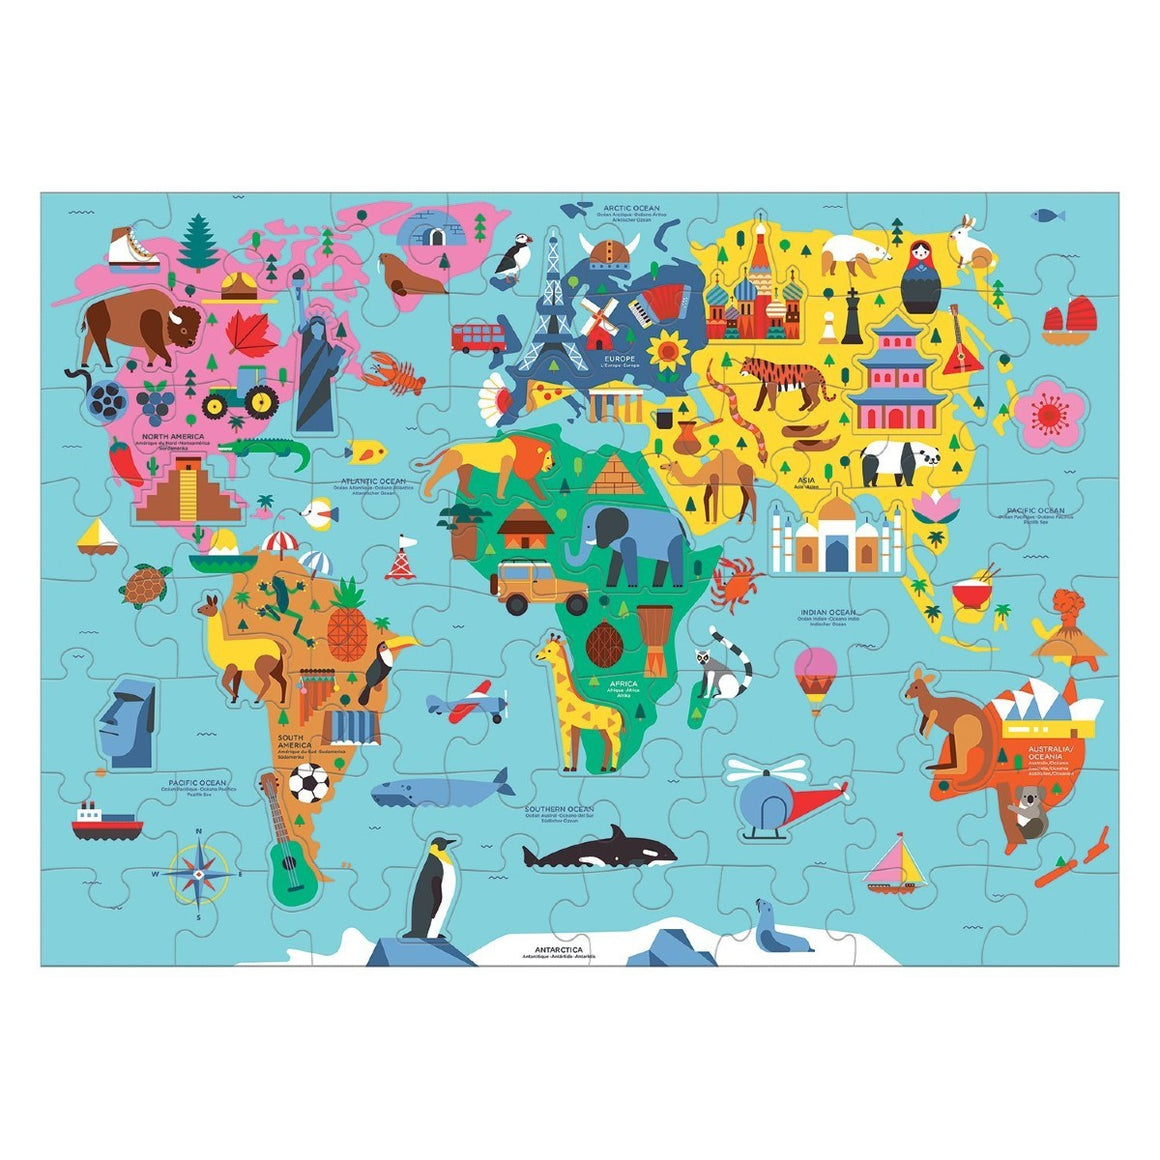 A puzzle depicting a simplified cartoon map of the world featuring iconic places, buildings and animals.